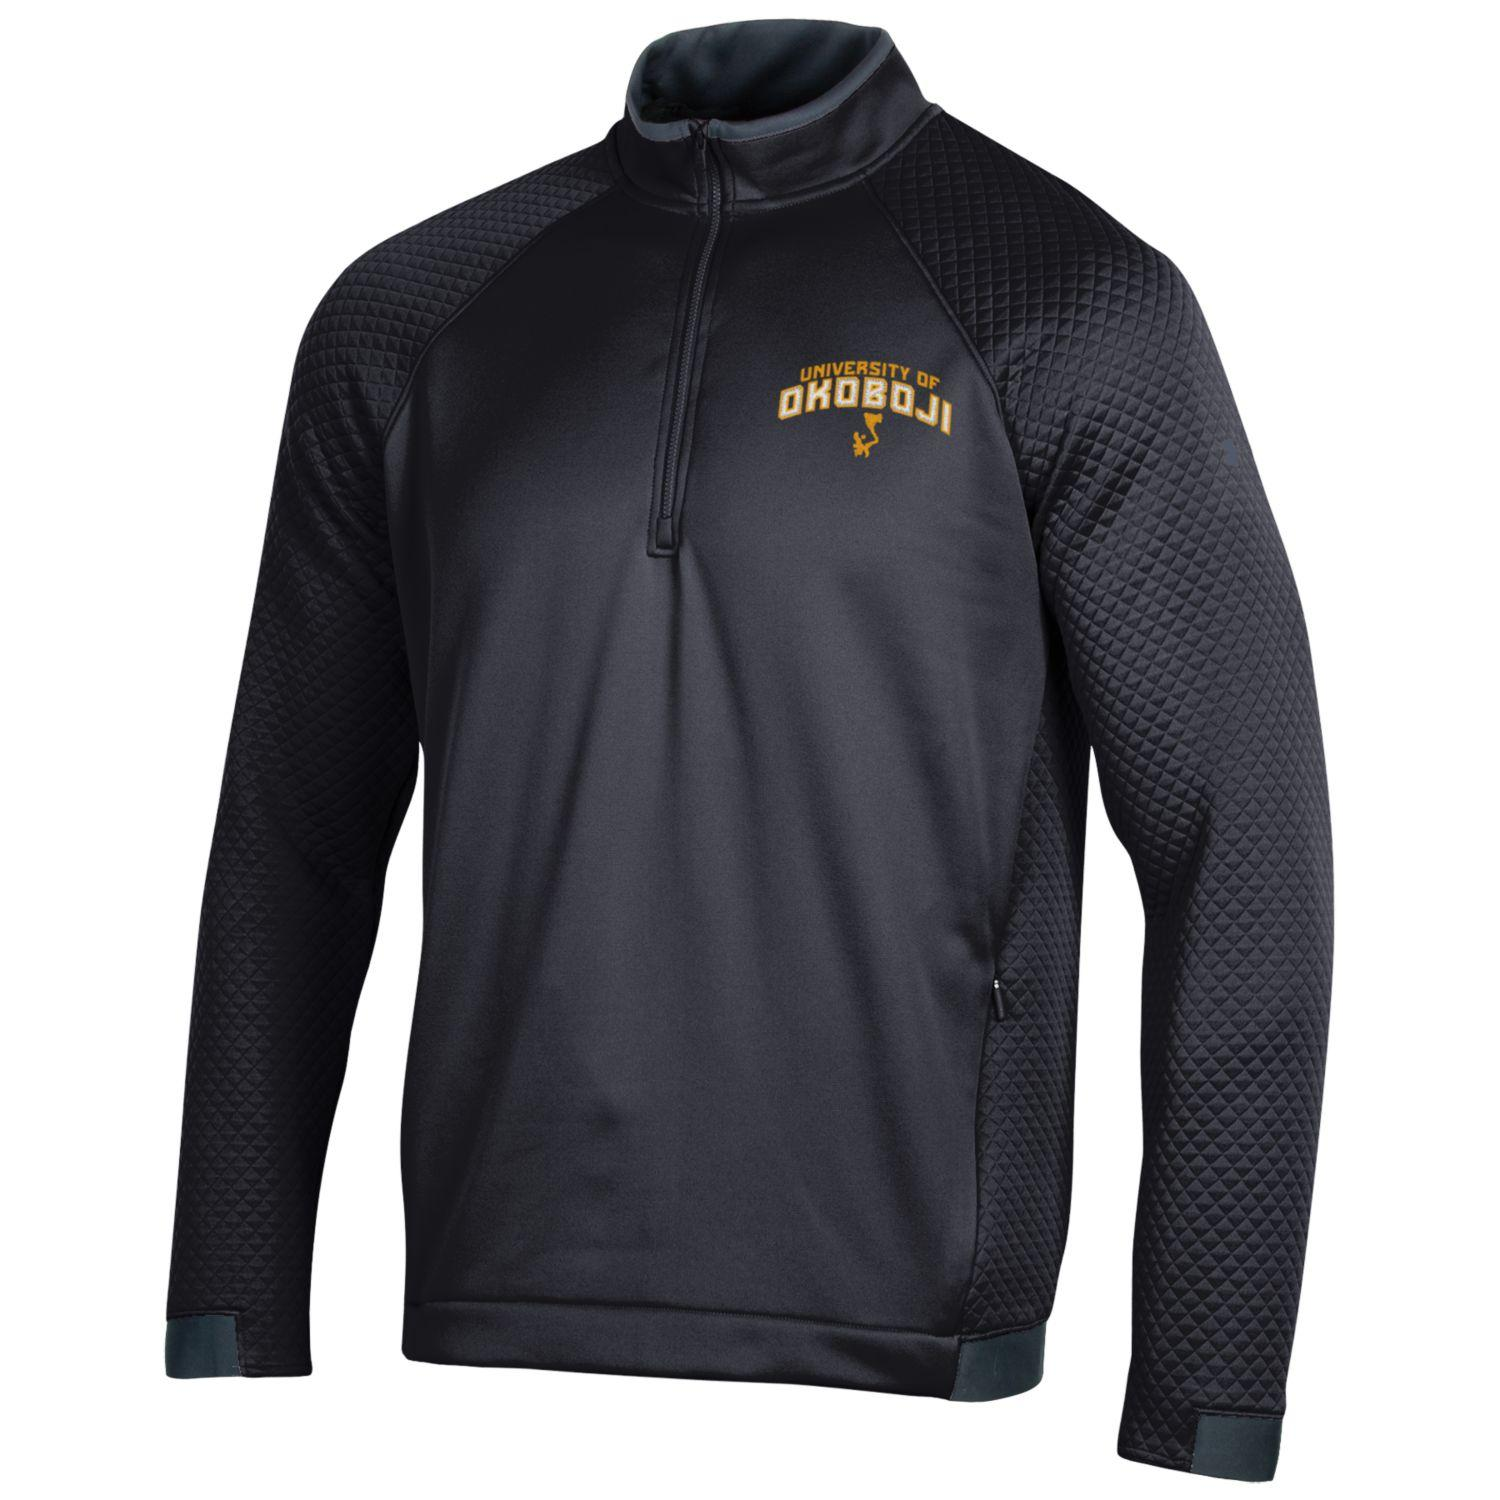 University of Okoboji HD 1/4 Zip - Black